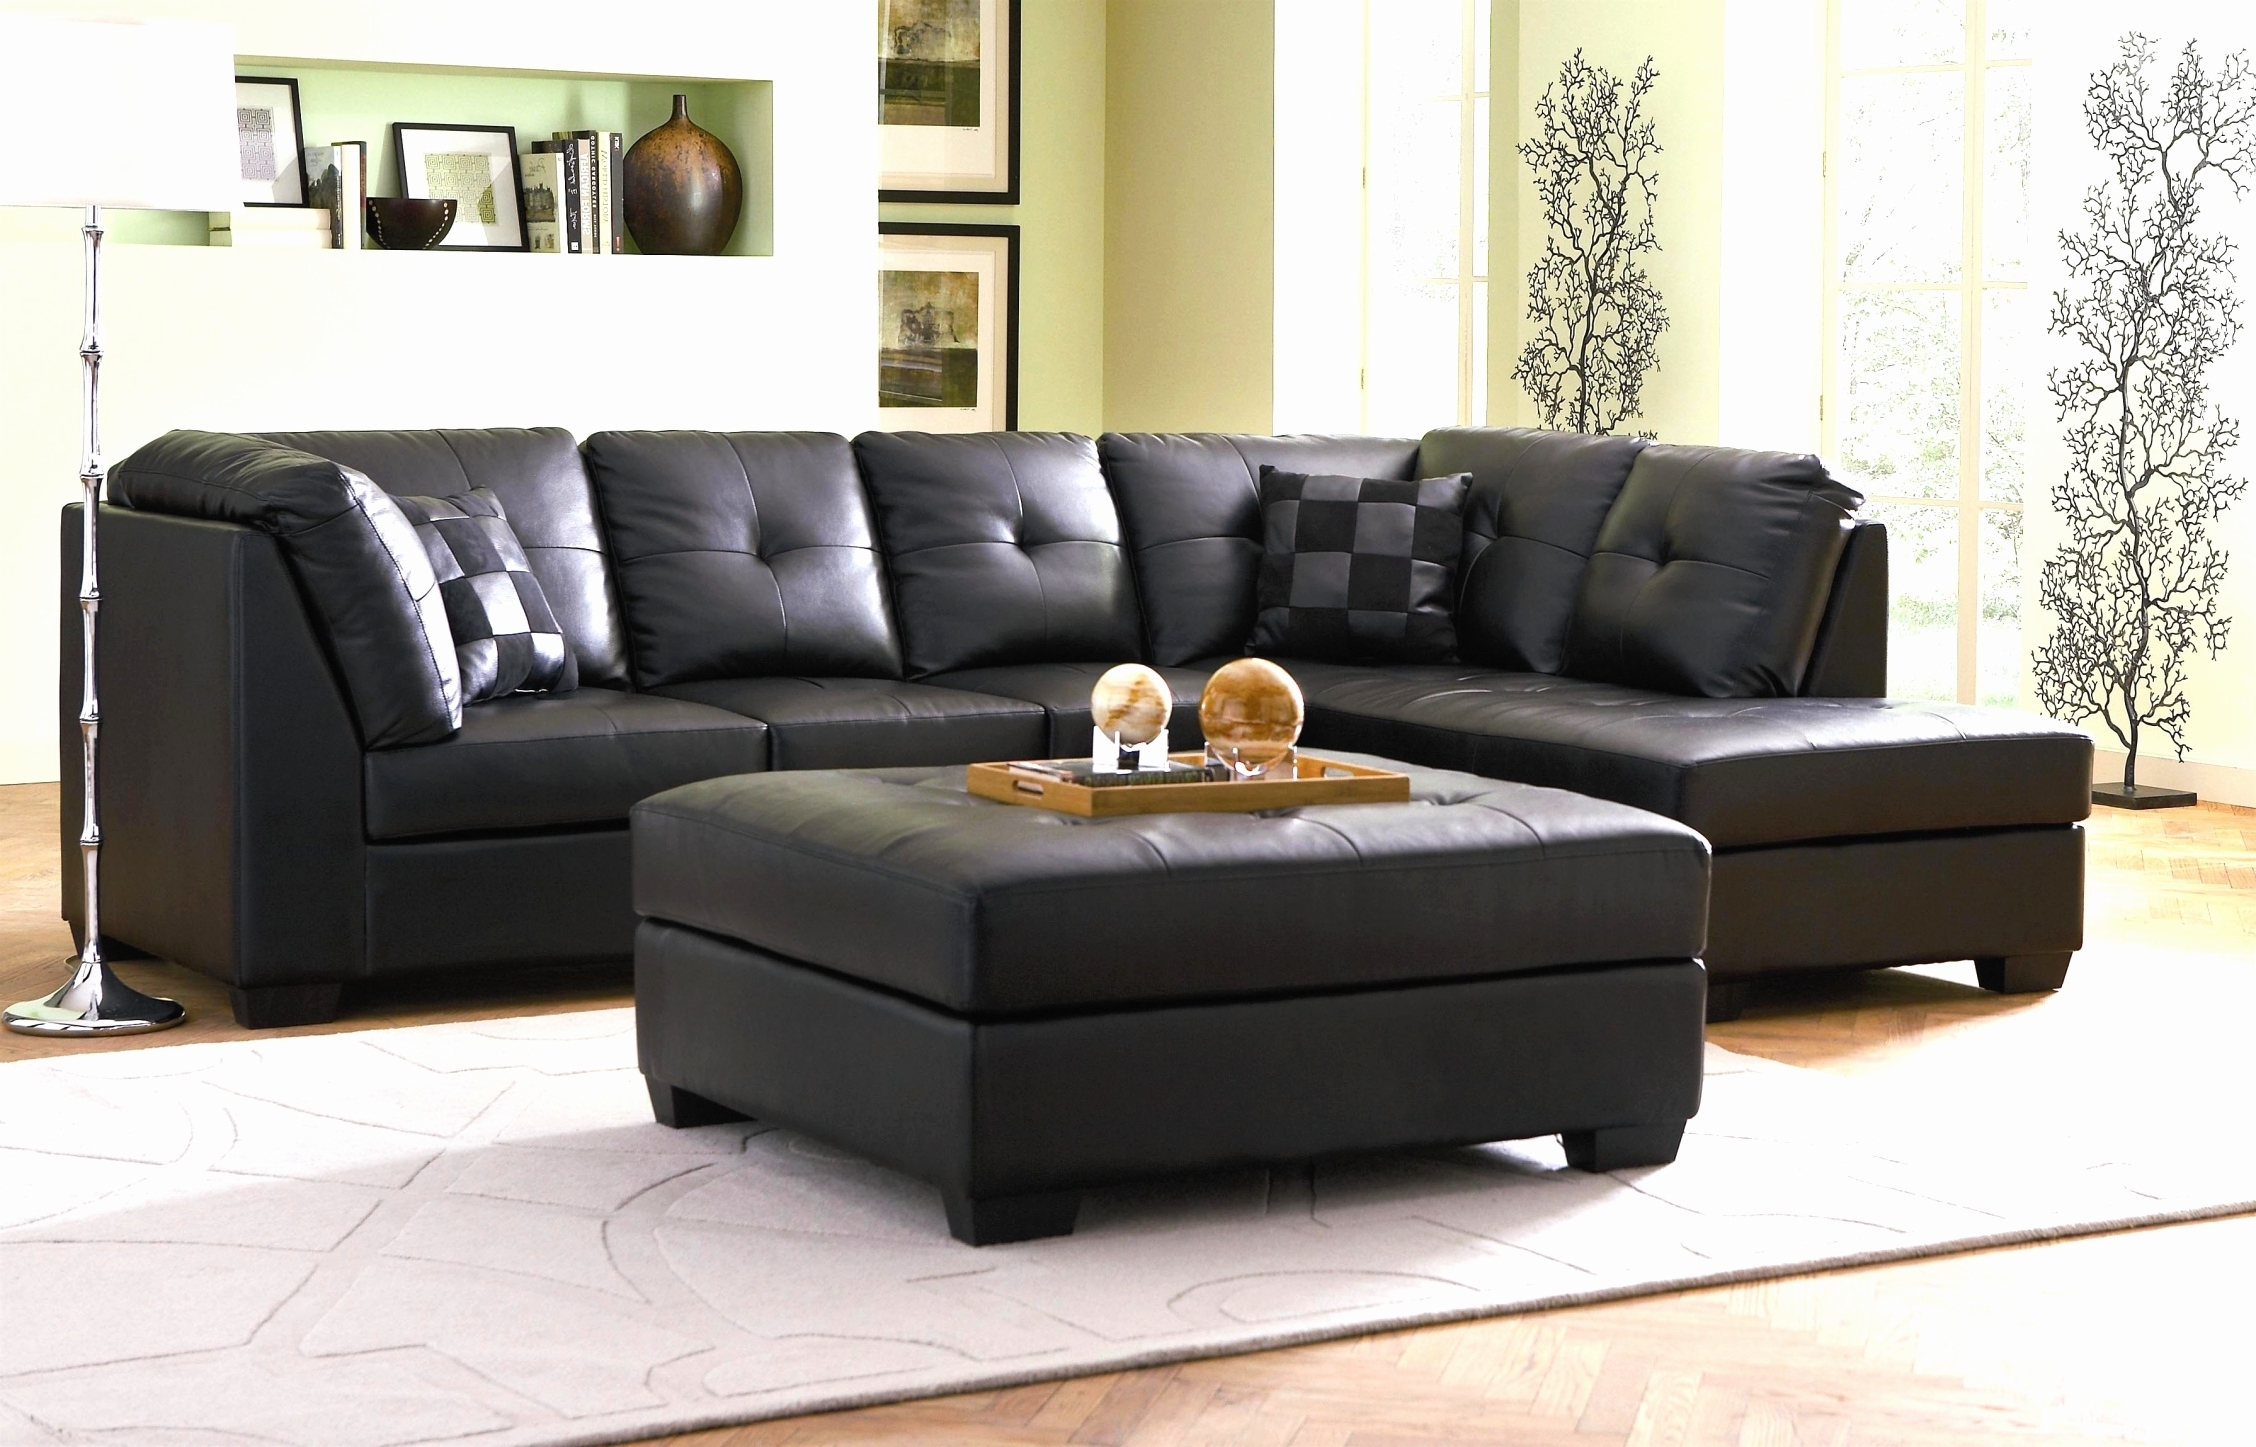 Well Liked Nashua Nh Sectional Sofas Pertaining To 32 Lovely Sectional Sofas Clearance Photos – Sectional Sofa Design (View 14 of 15)